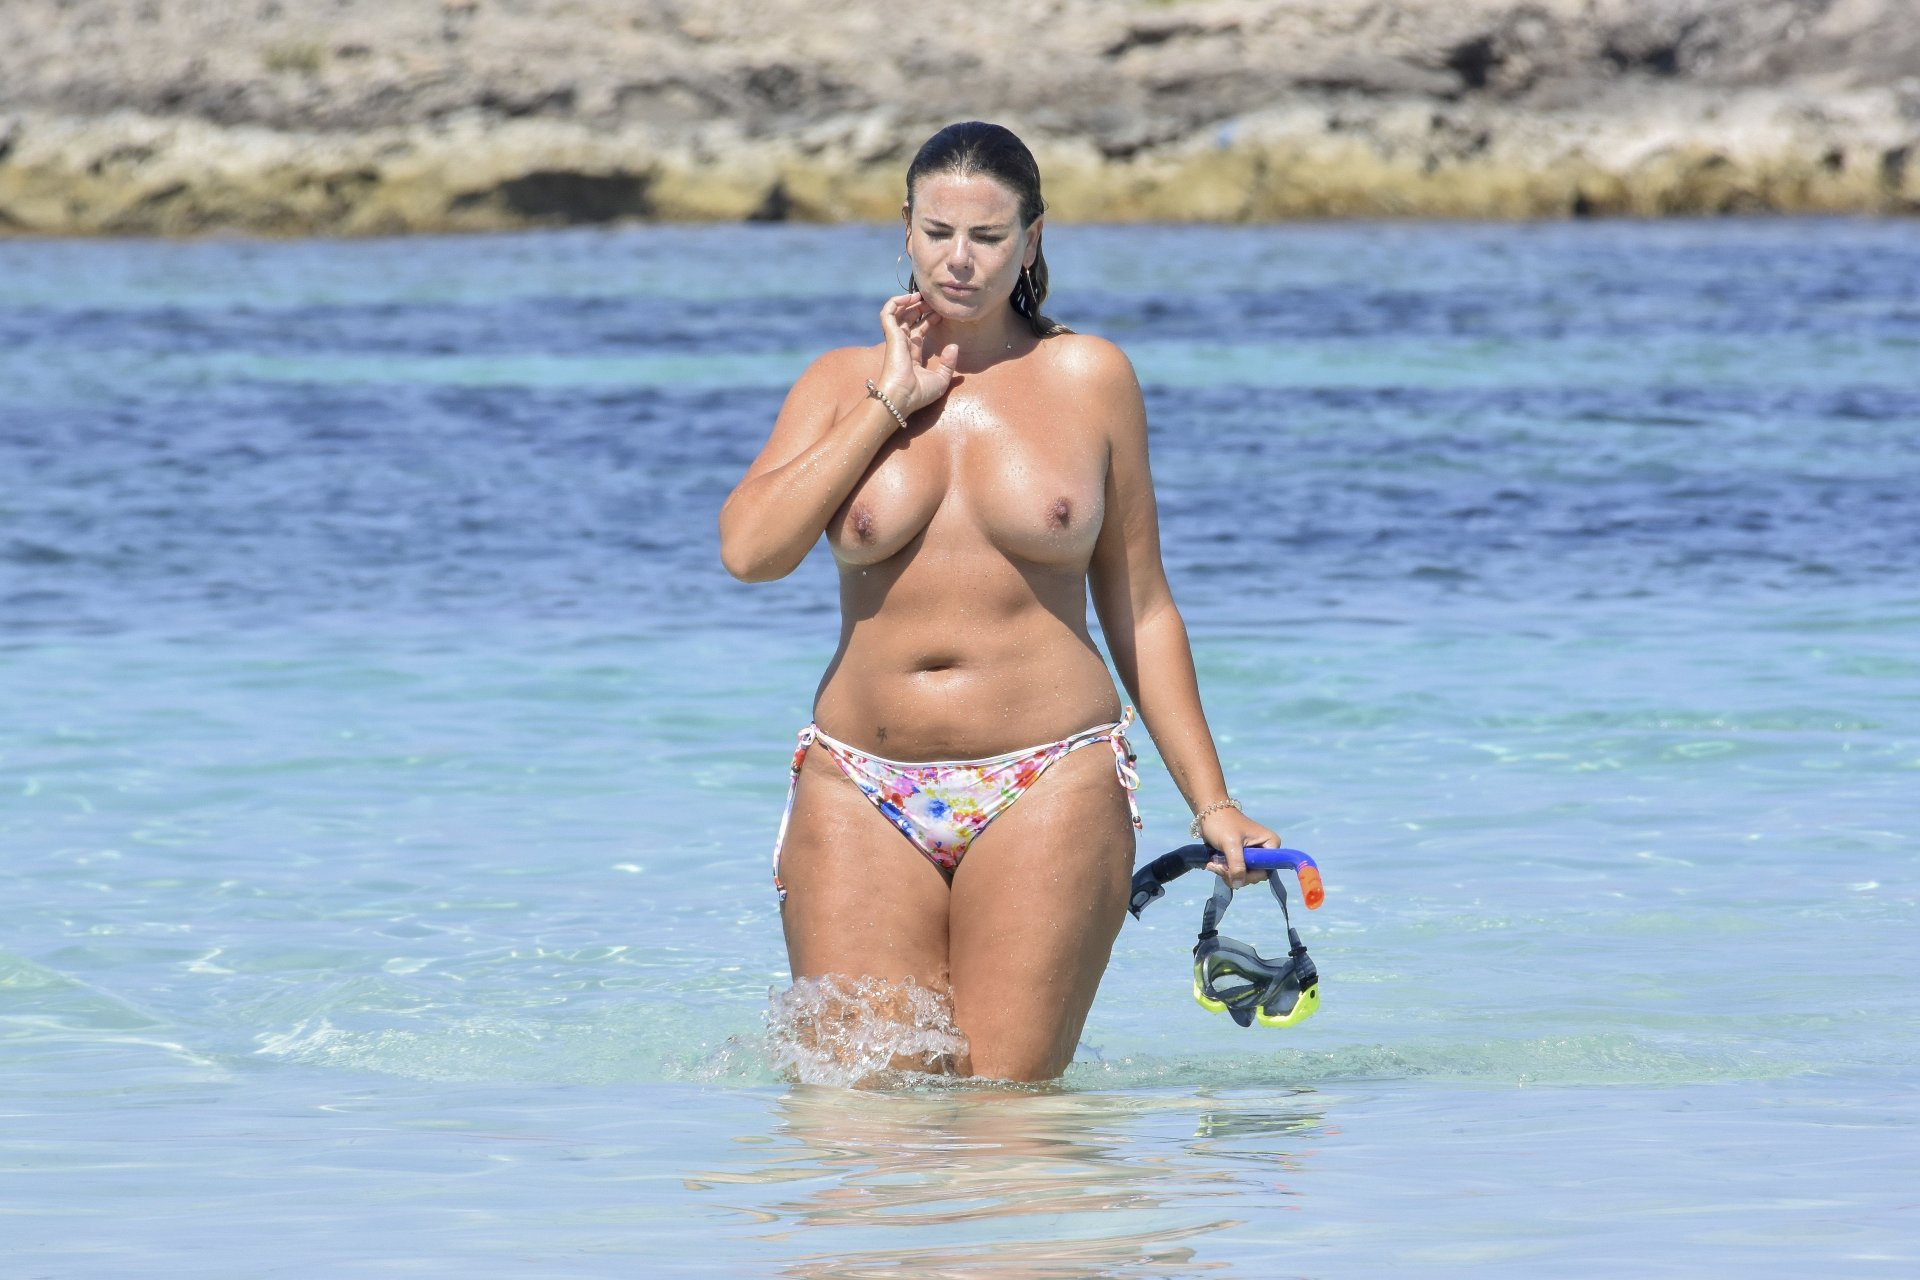 Fiona falkiner topless in holidays in ibiza naked (16 photo), Instagram Celebrites fotos